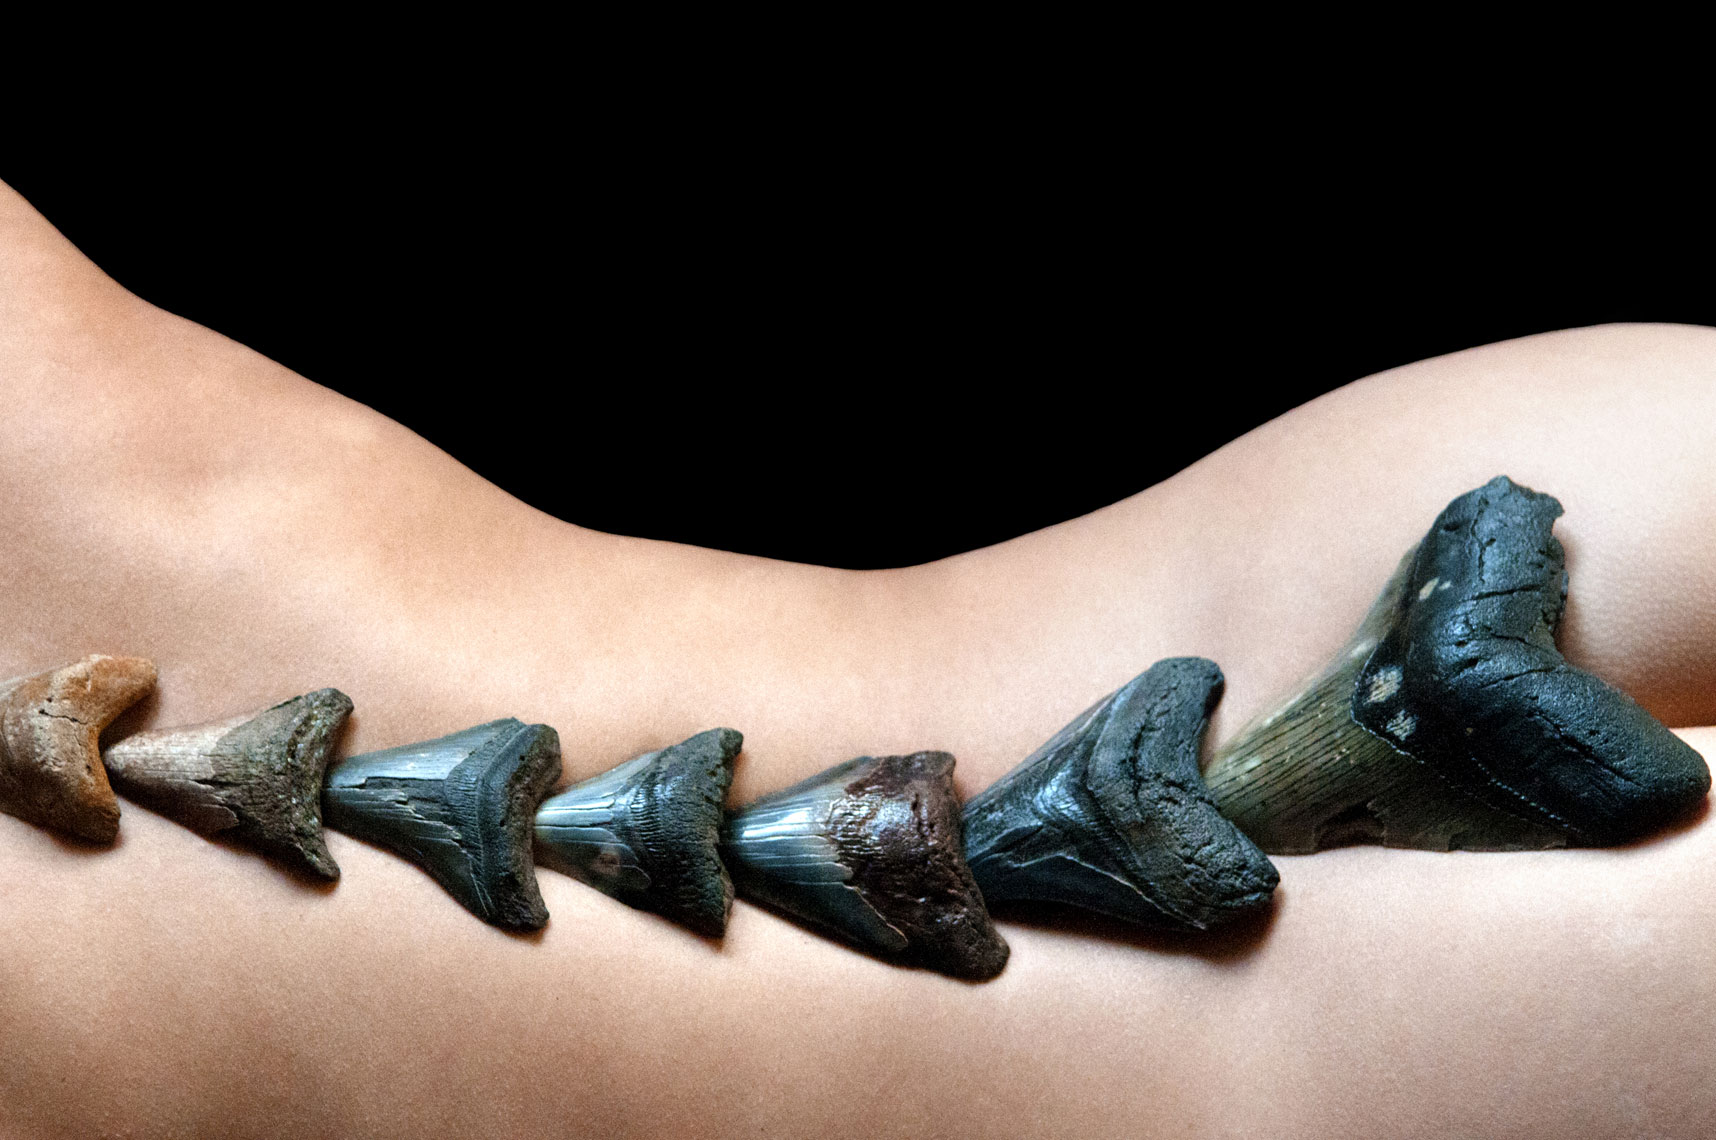 megalodon-fossil-giant-shark-teeth-on-female-spine